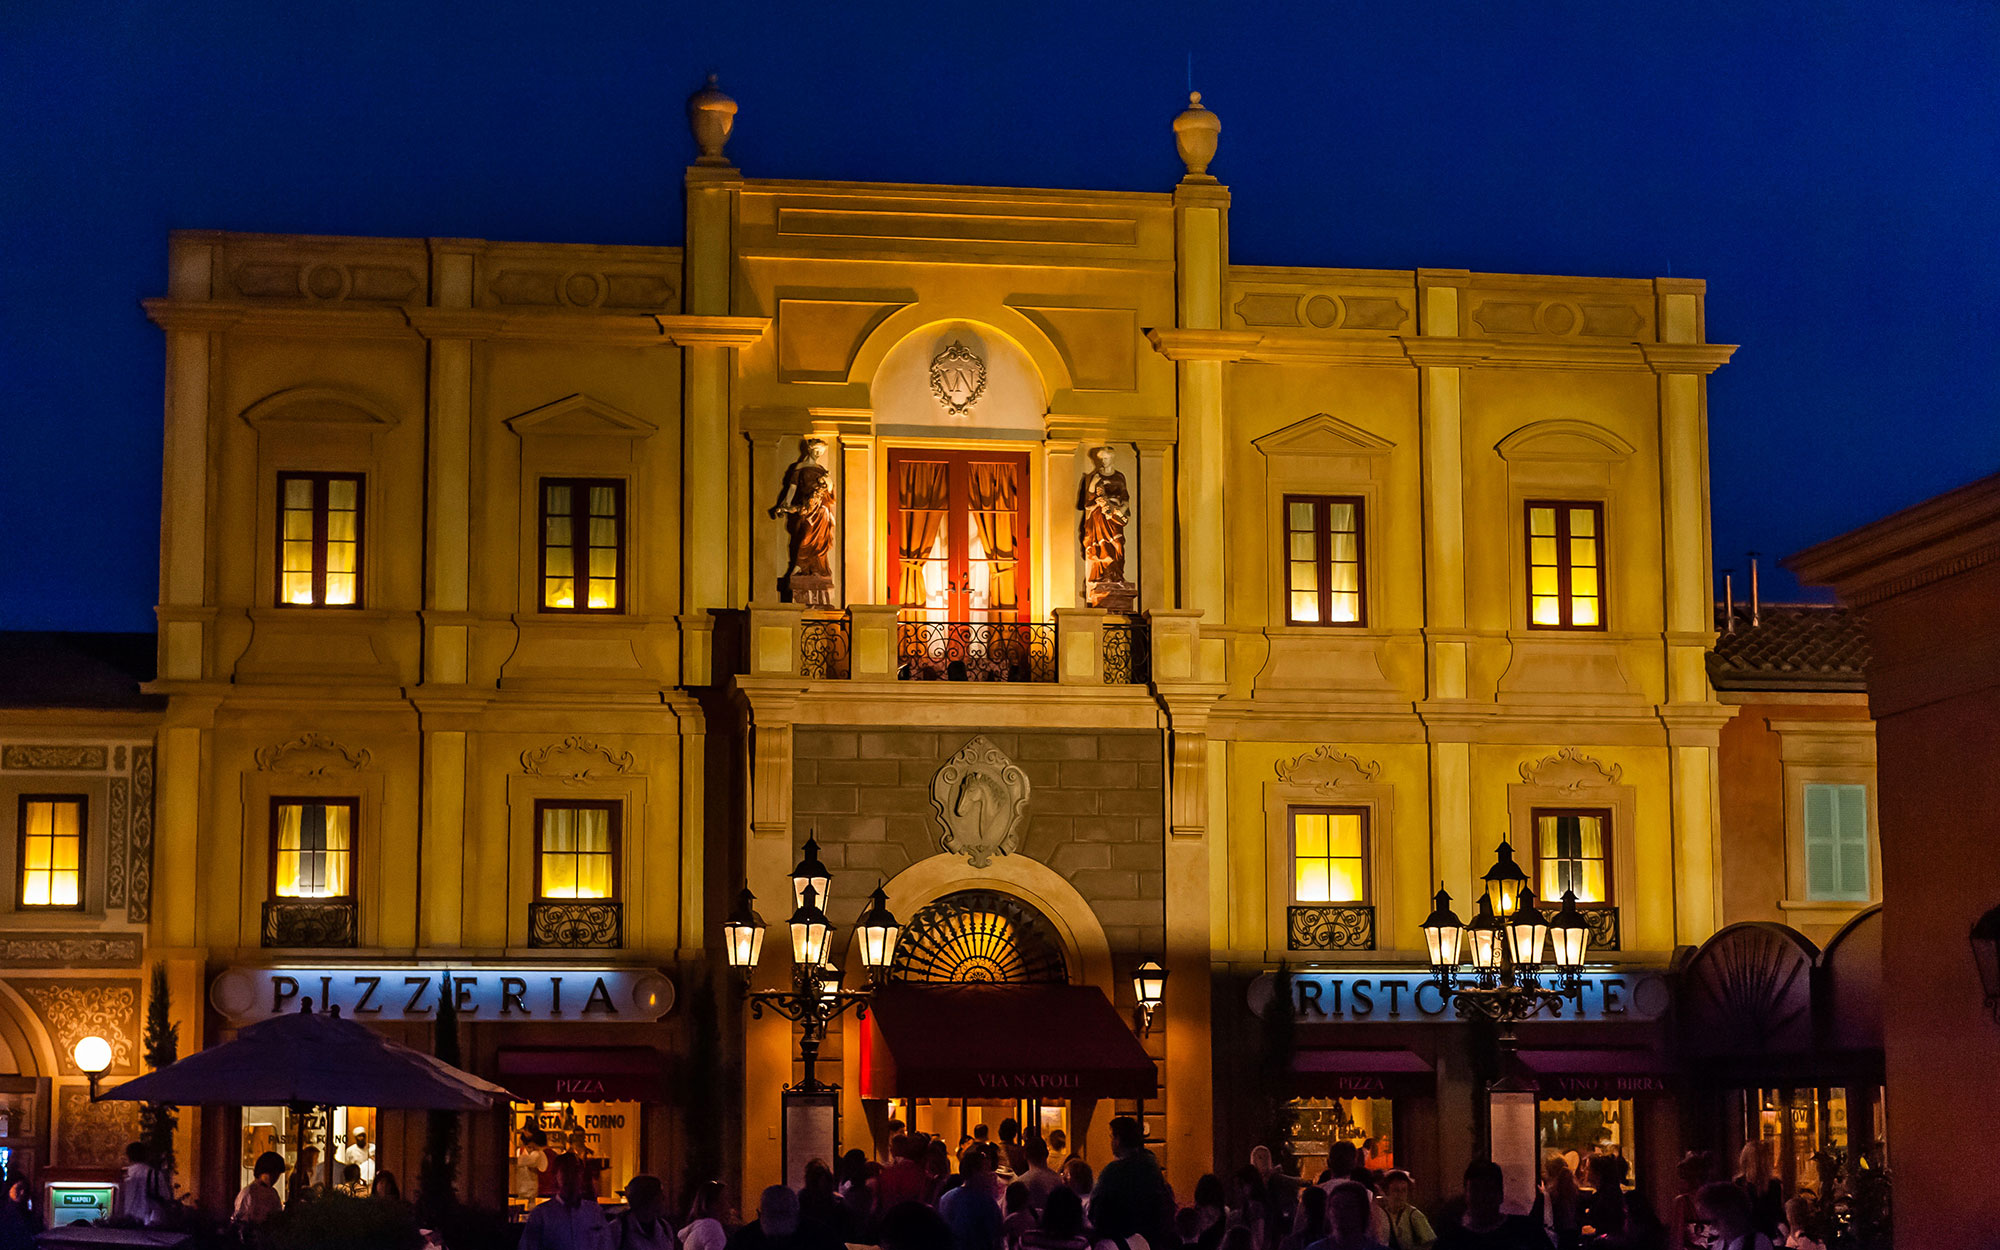 Drinking Around the World at Disney's Epcot: Italy